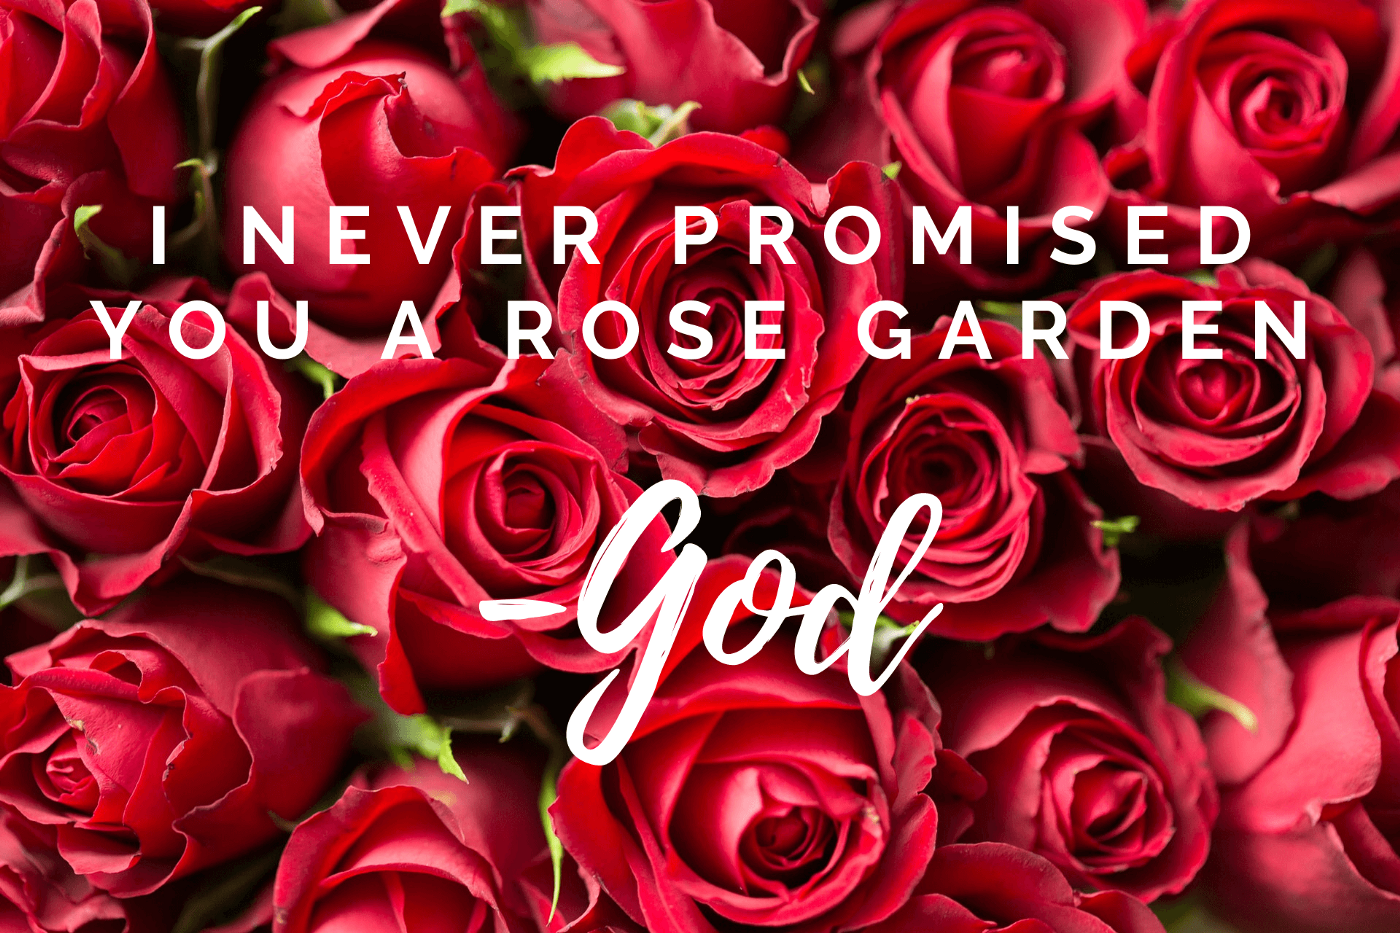 Red rose background. Text: I never promised you a rose garden. -God